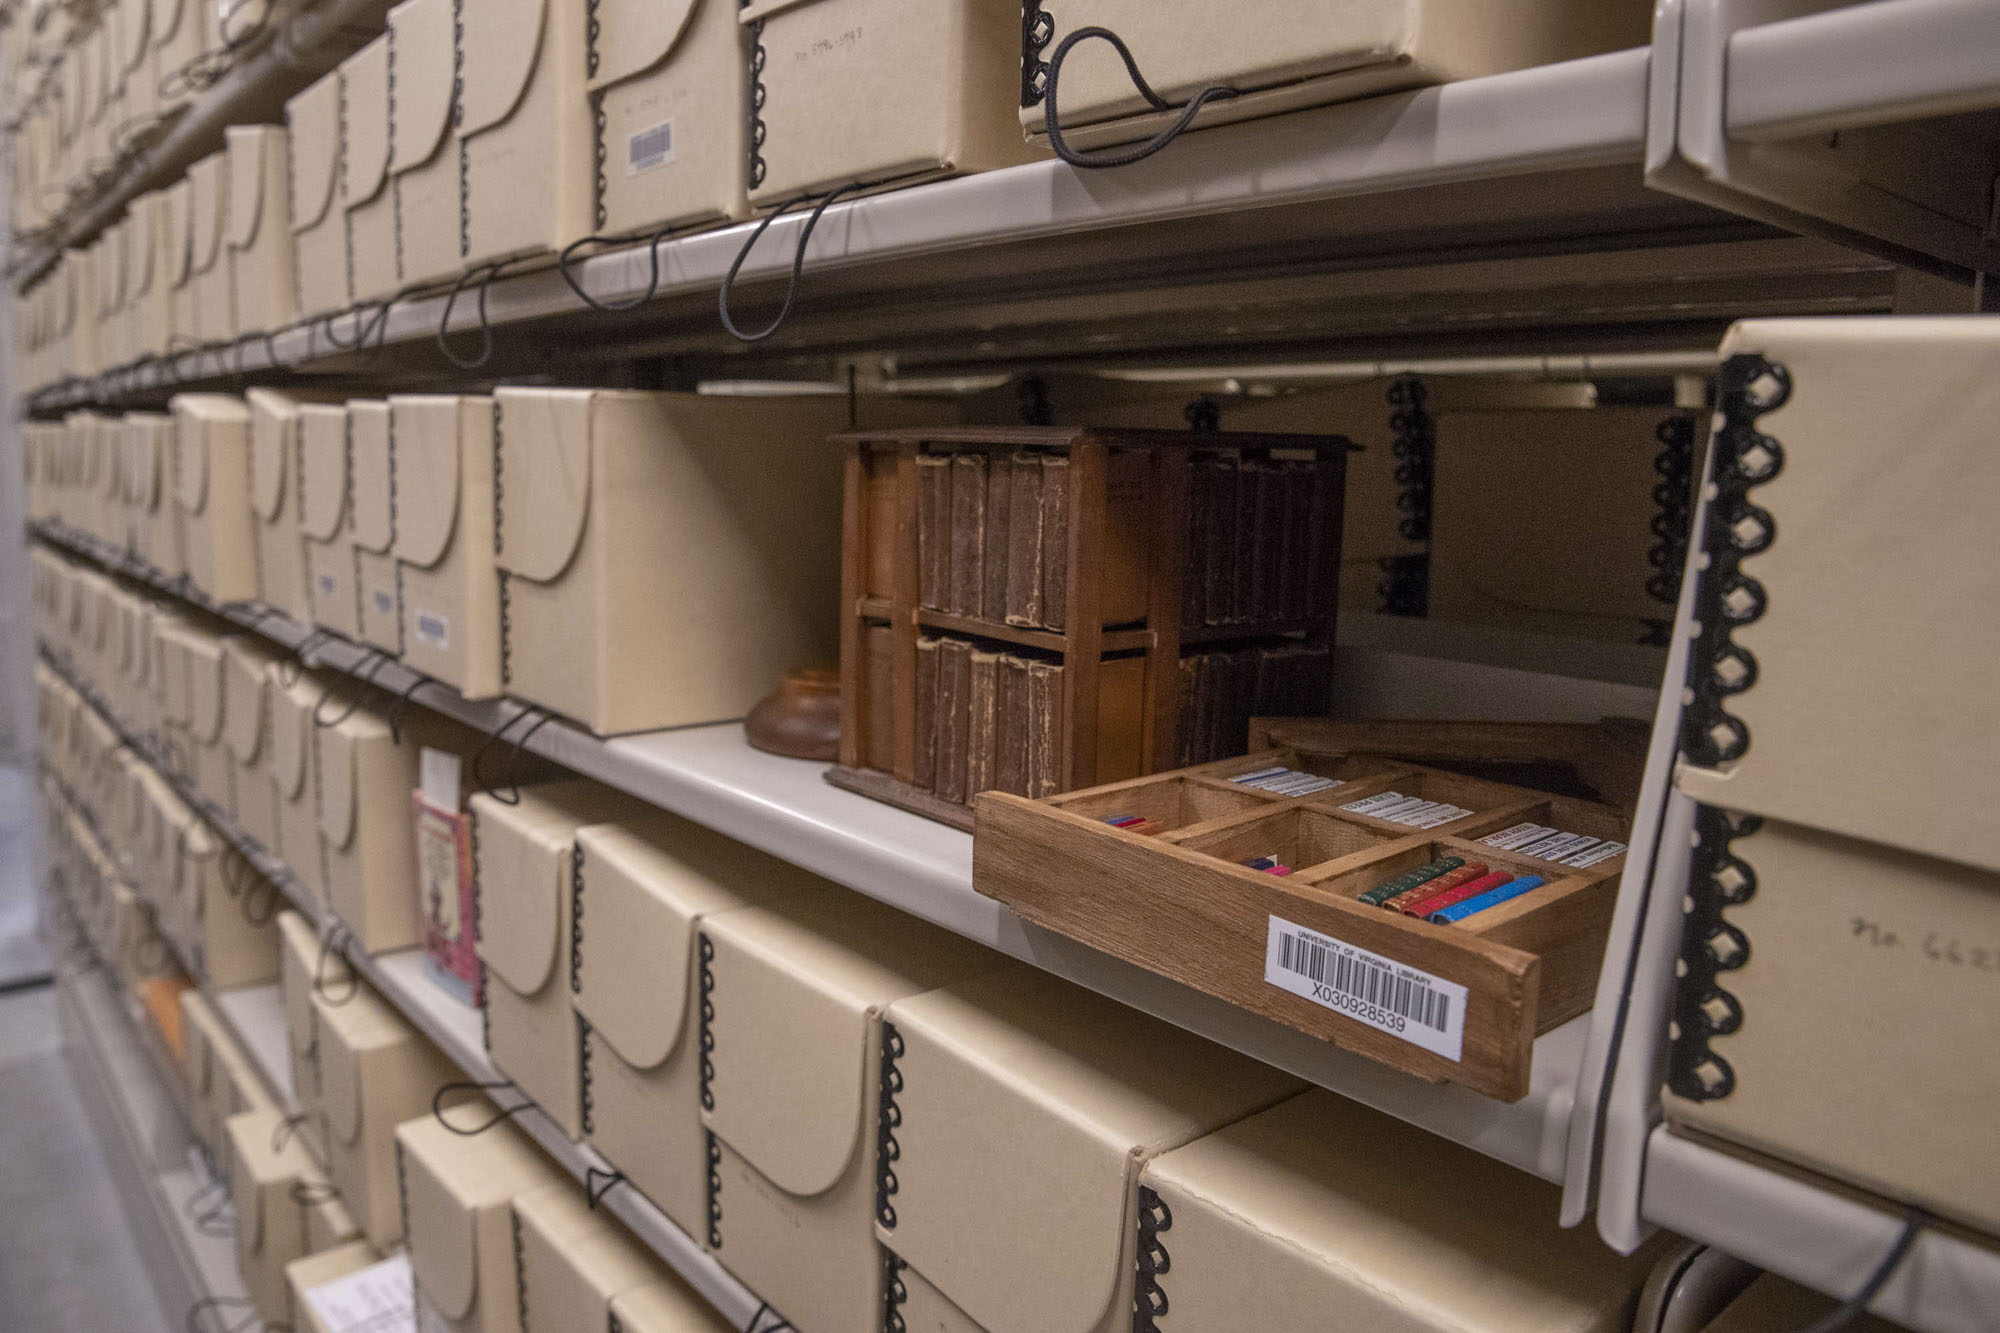 The 15,000 volumes of the McGehee Miniature Book Collection are stored in microfilm boxes and occupy just two sides of compact shelves in the rare book archives.